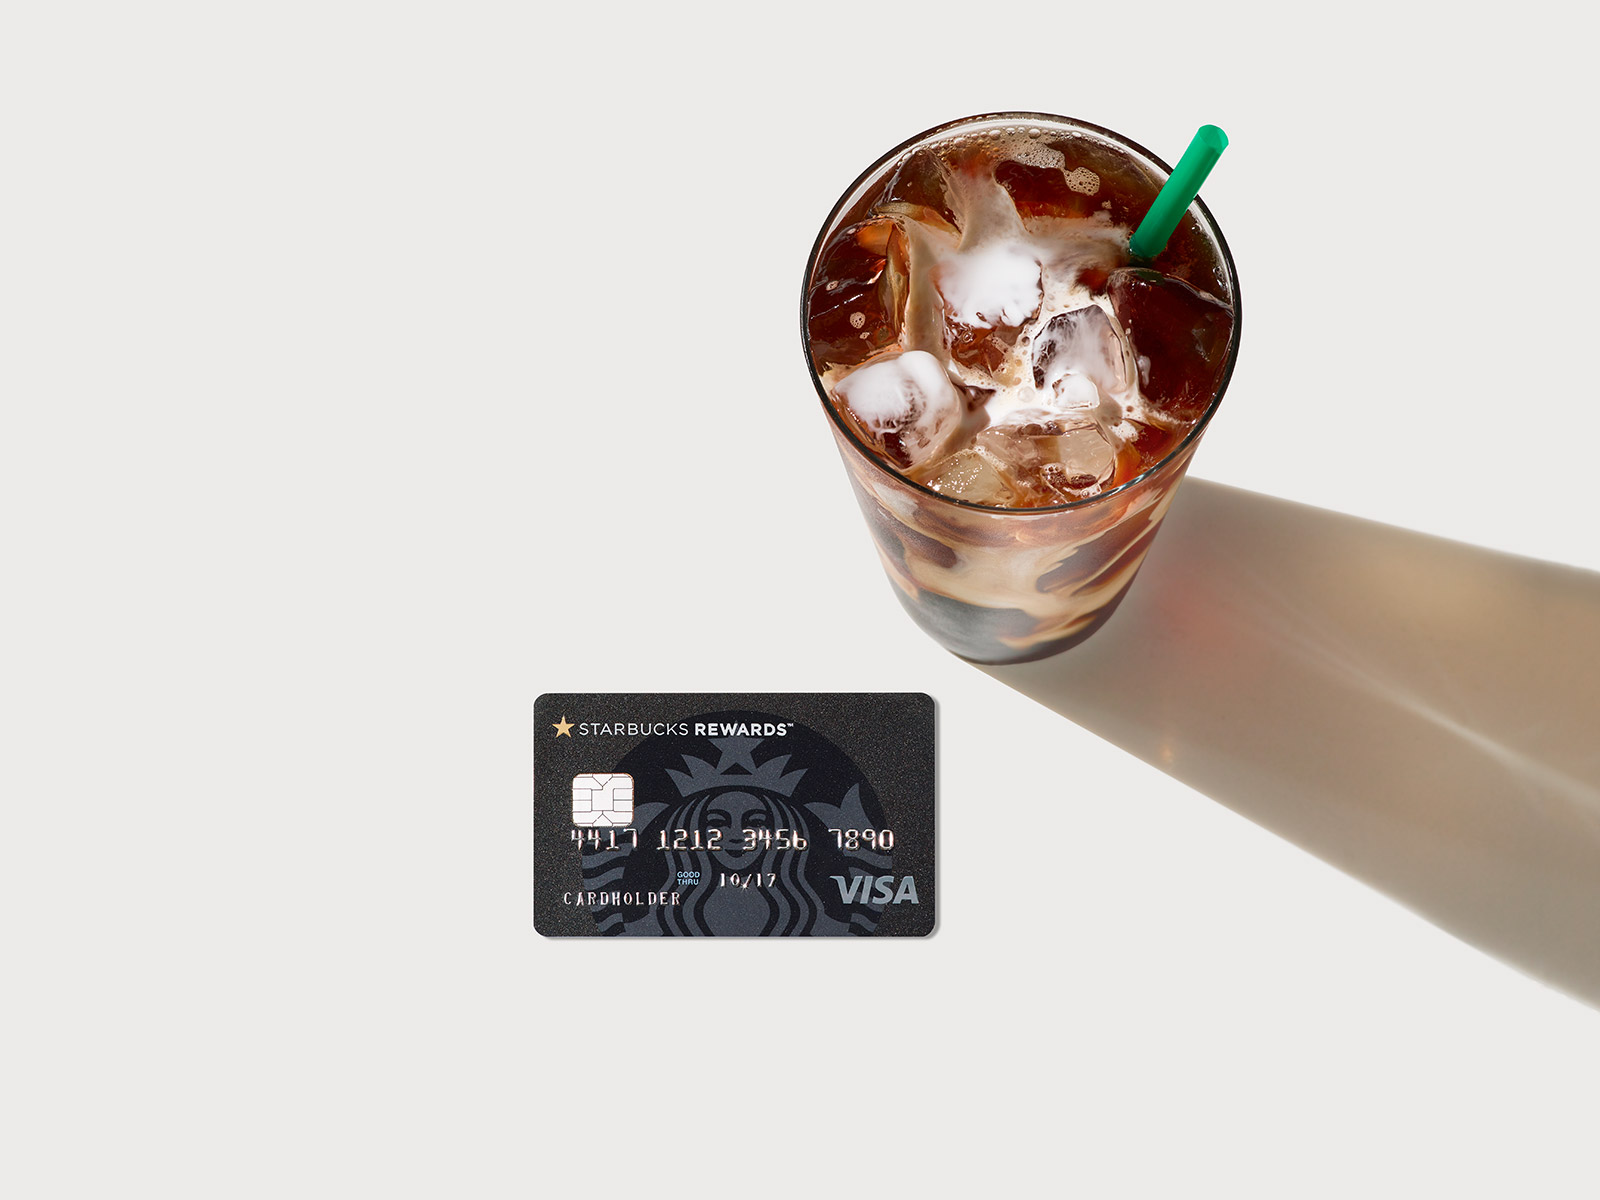 starbucks chase visa card